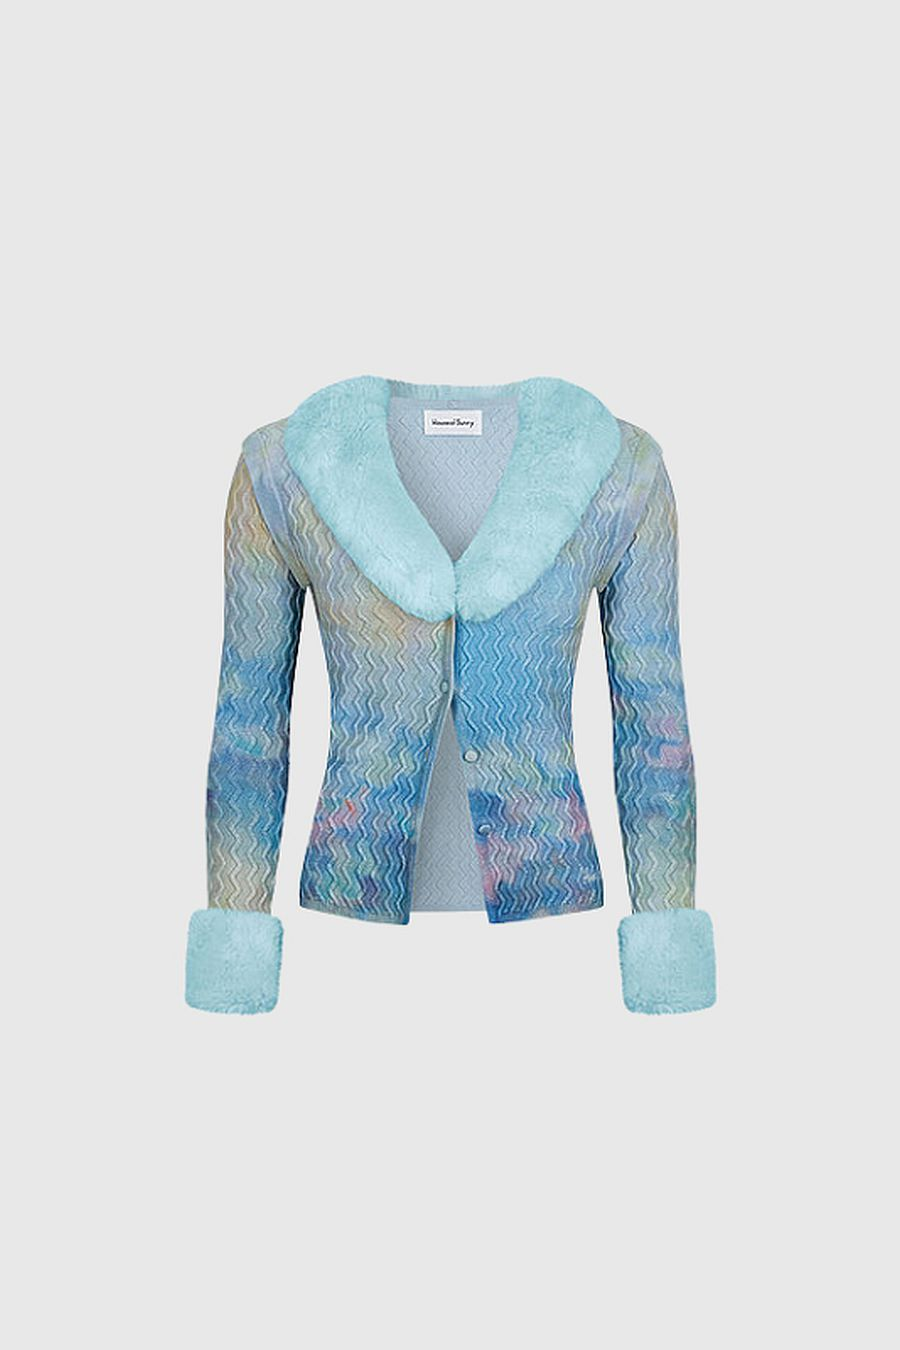 House Of Sunny Reflections Peggy Cardi